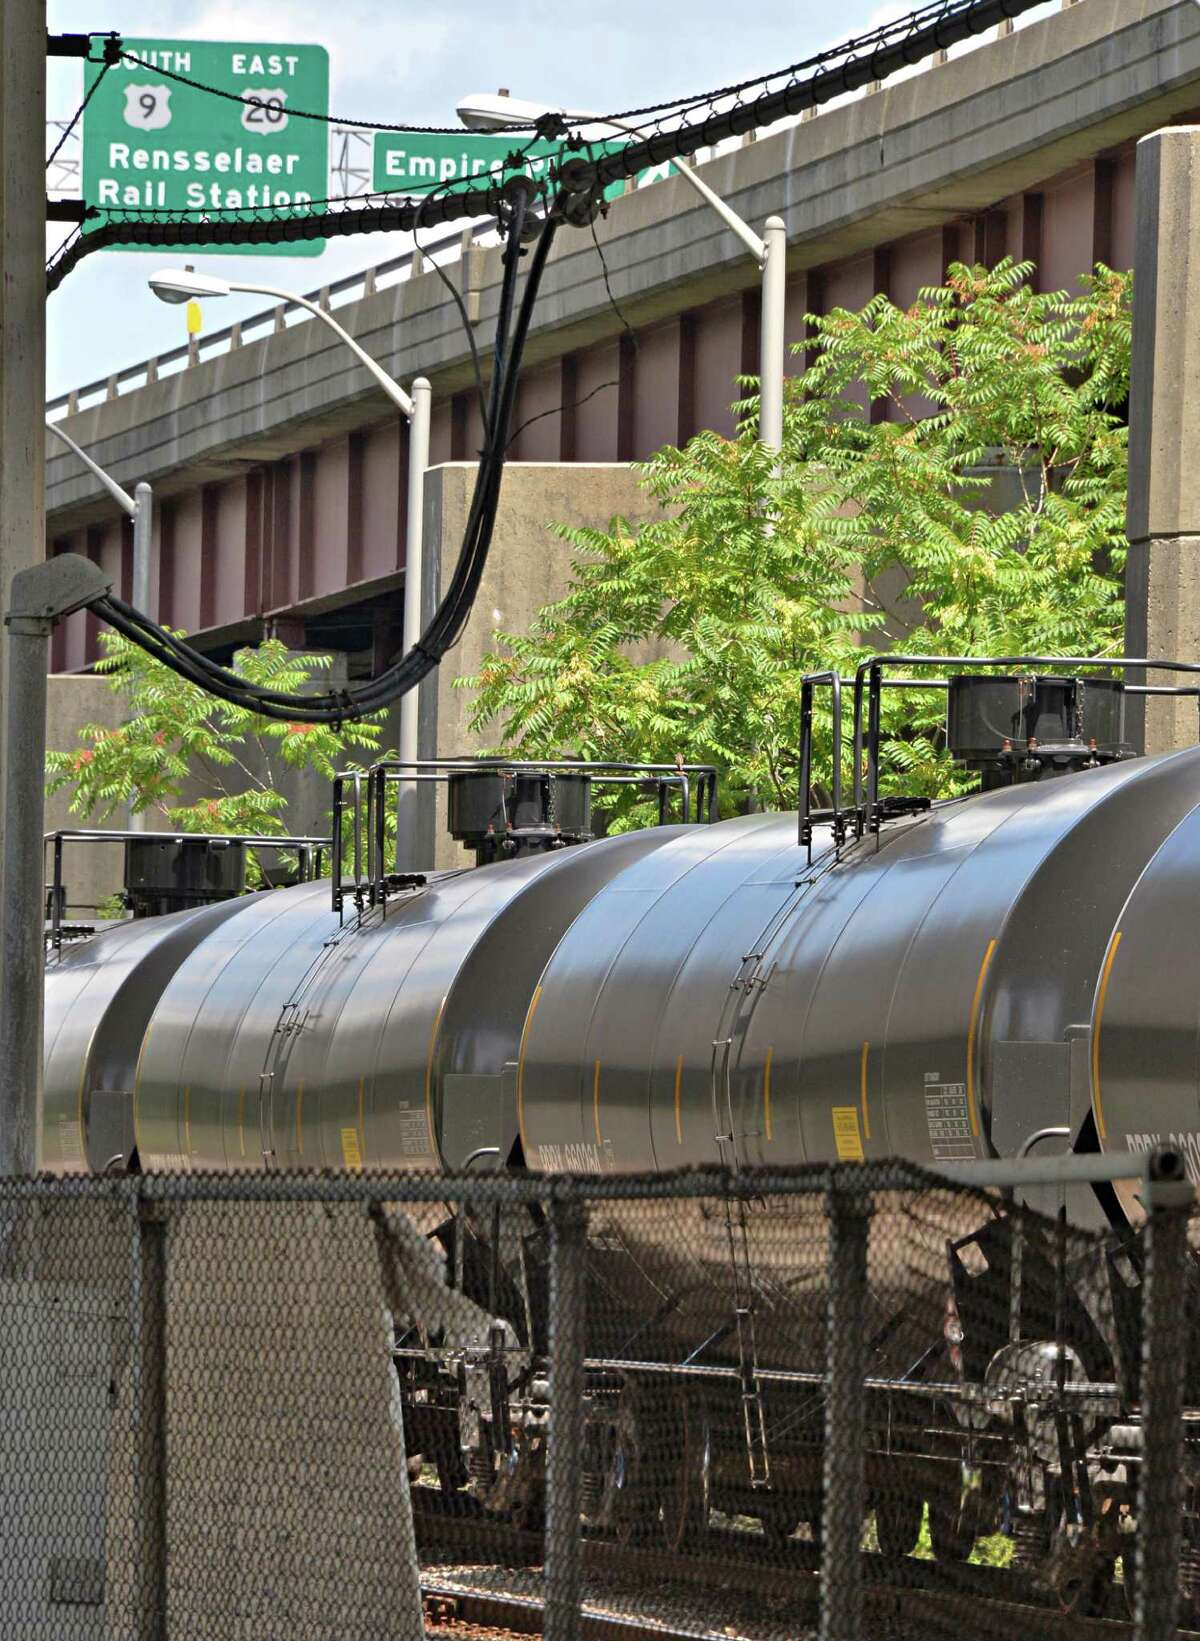 Railroad oil tanker cars under I-787 in Albany, NY, Tuesday July 30, 2013. (John Carl D'Annibale / Times Union)